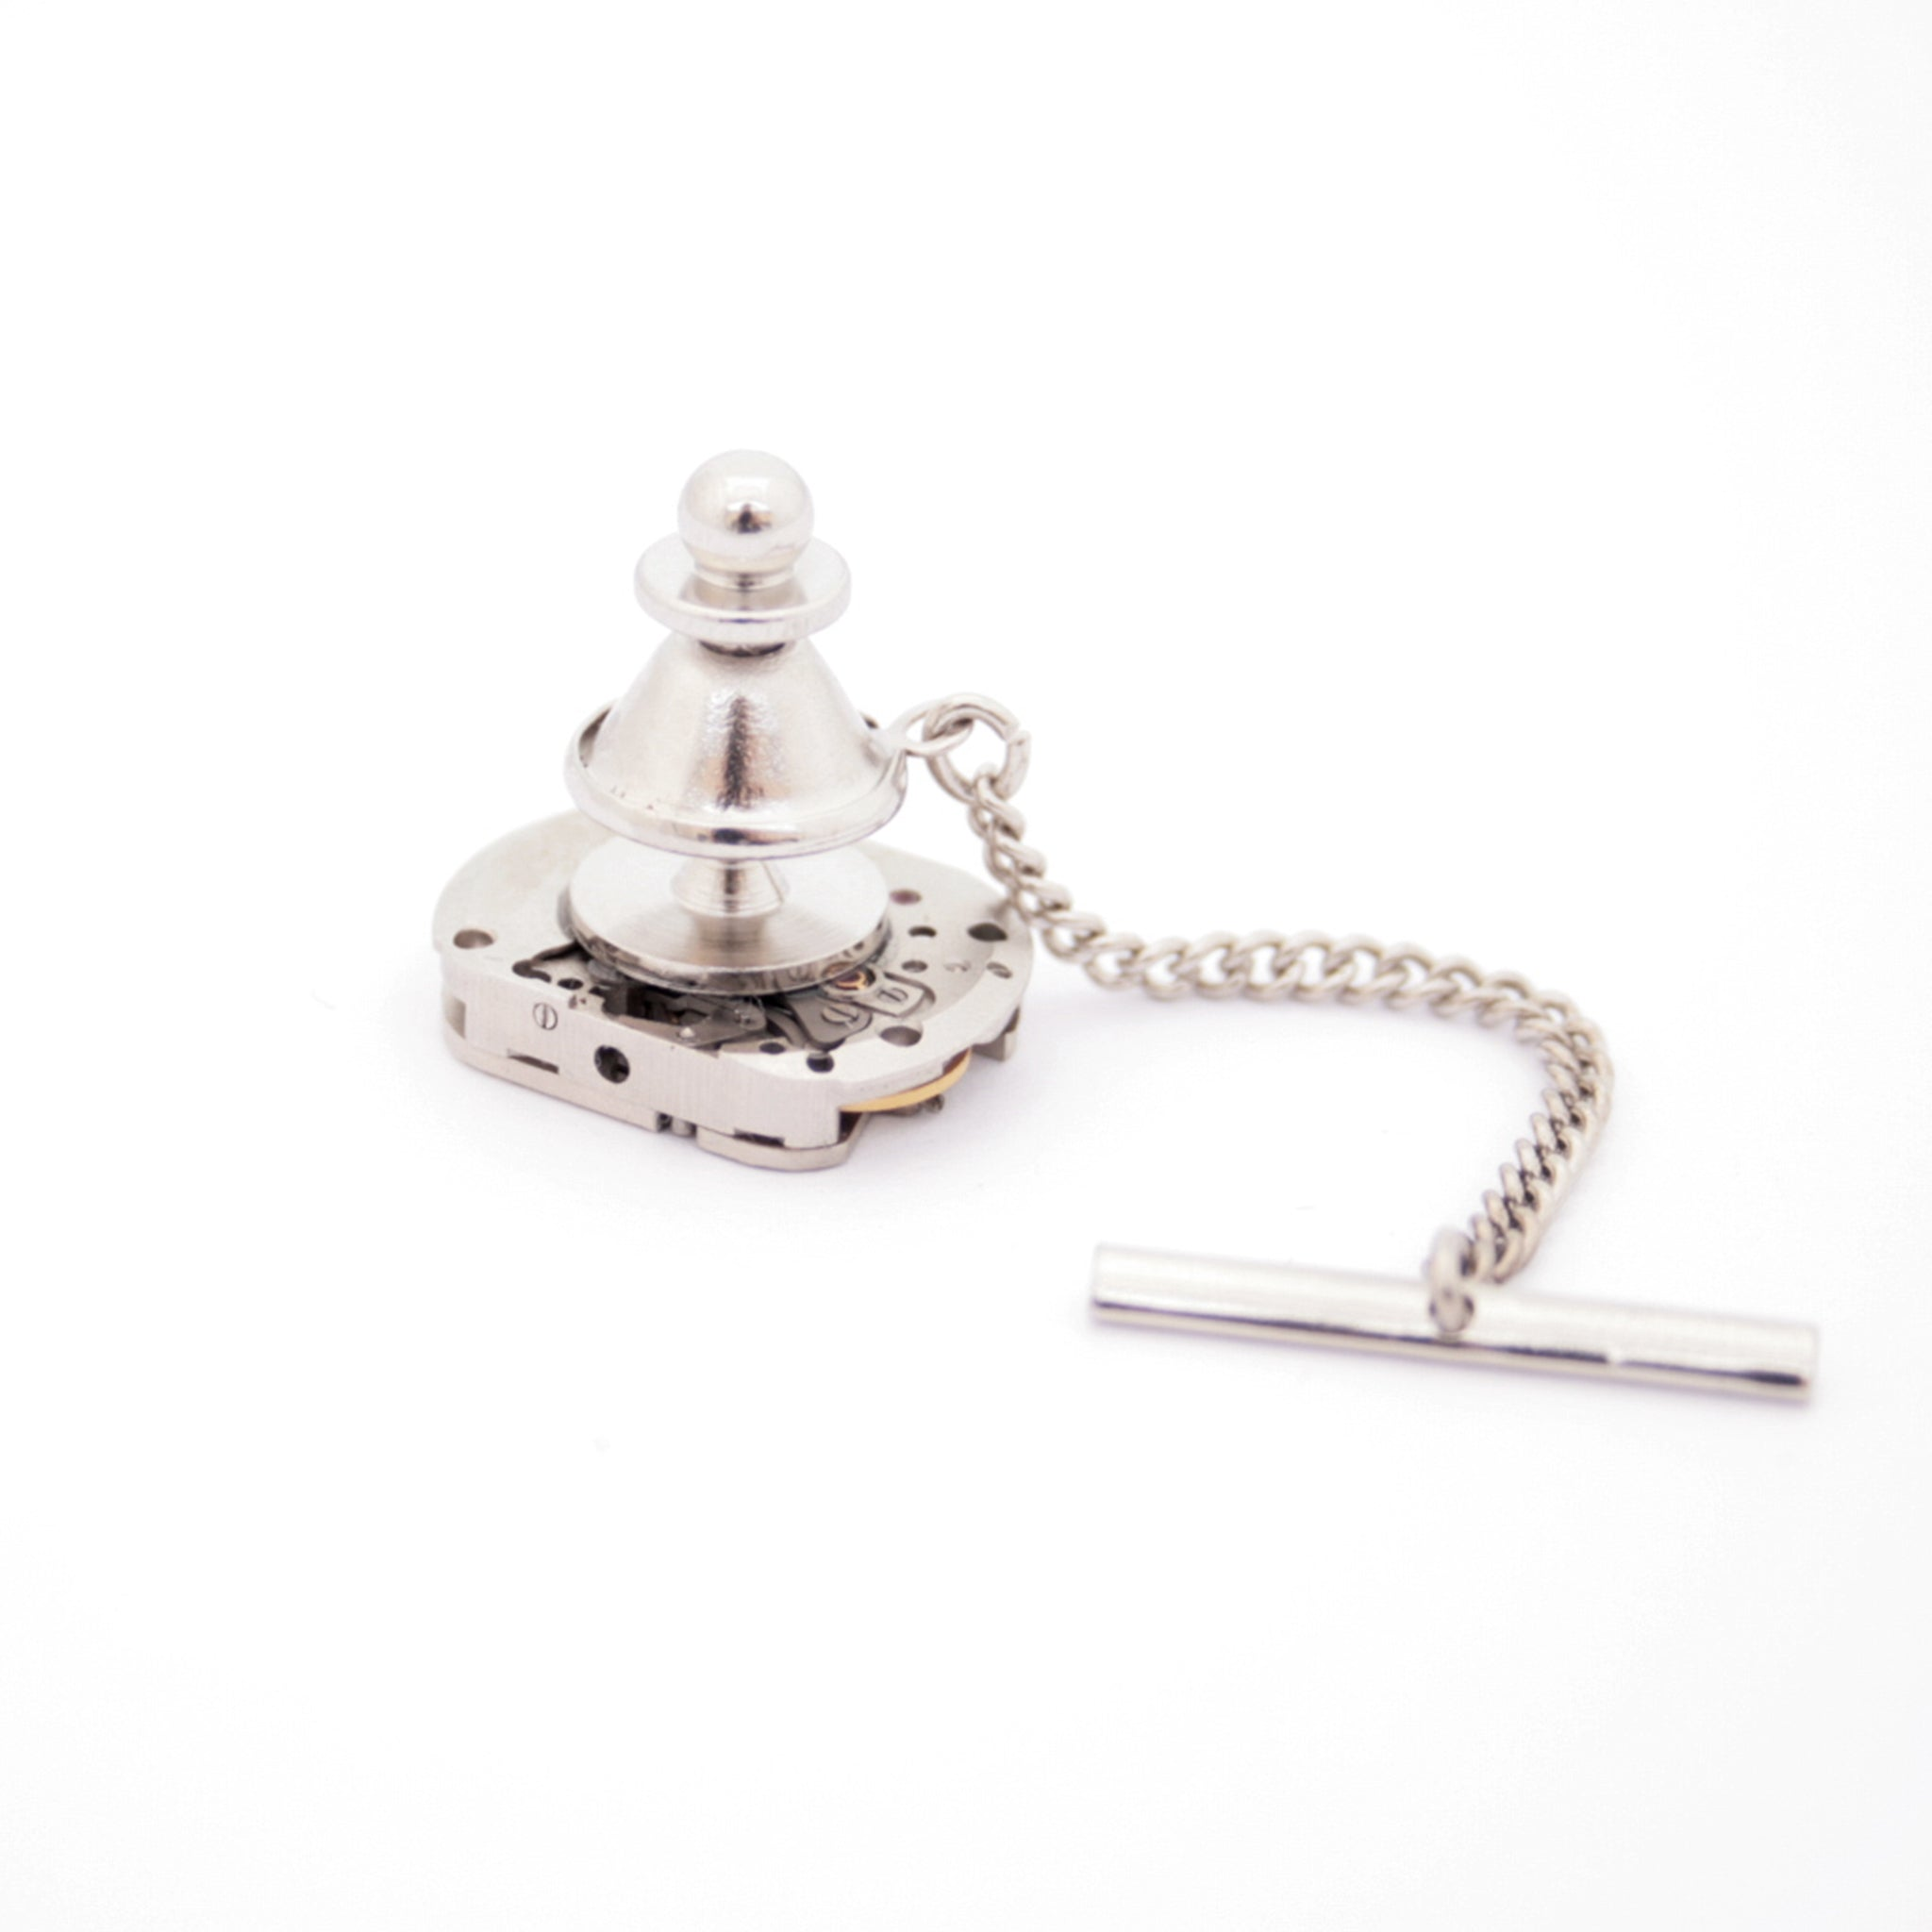 tie tack with chain made of watch movement